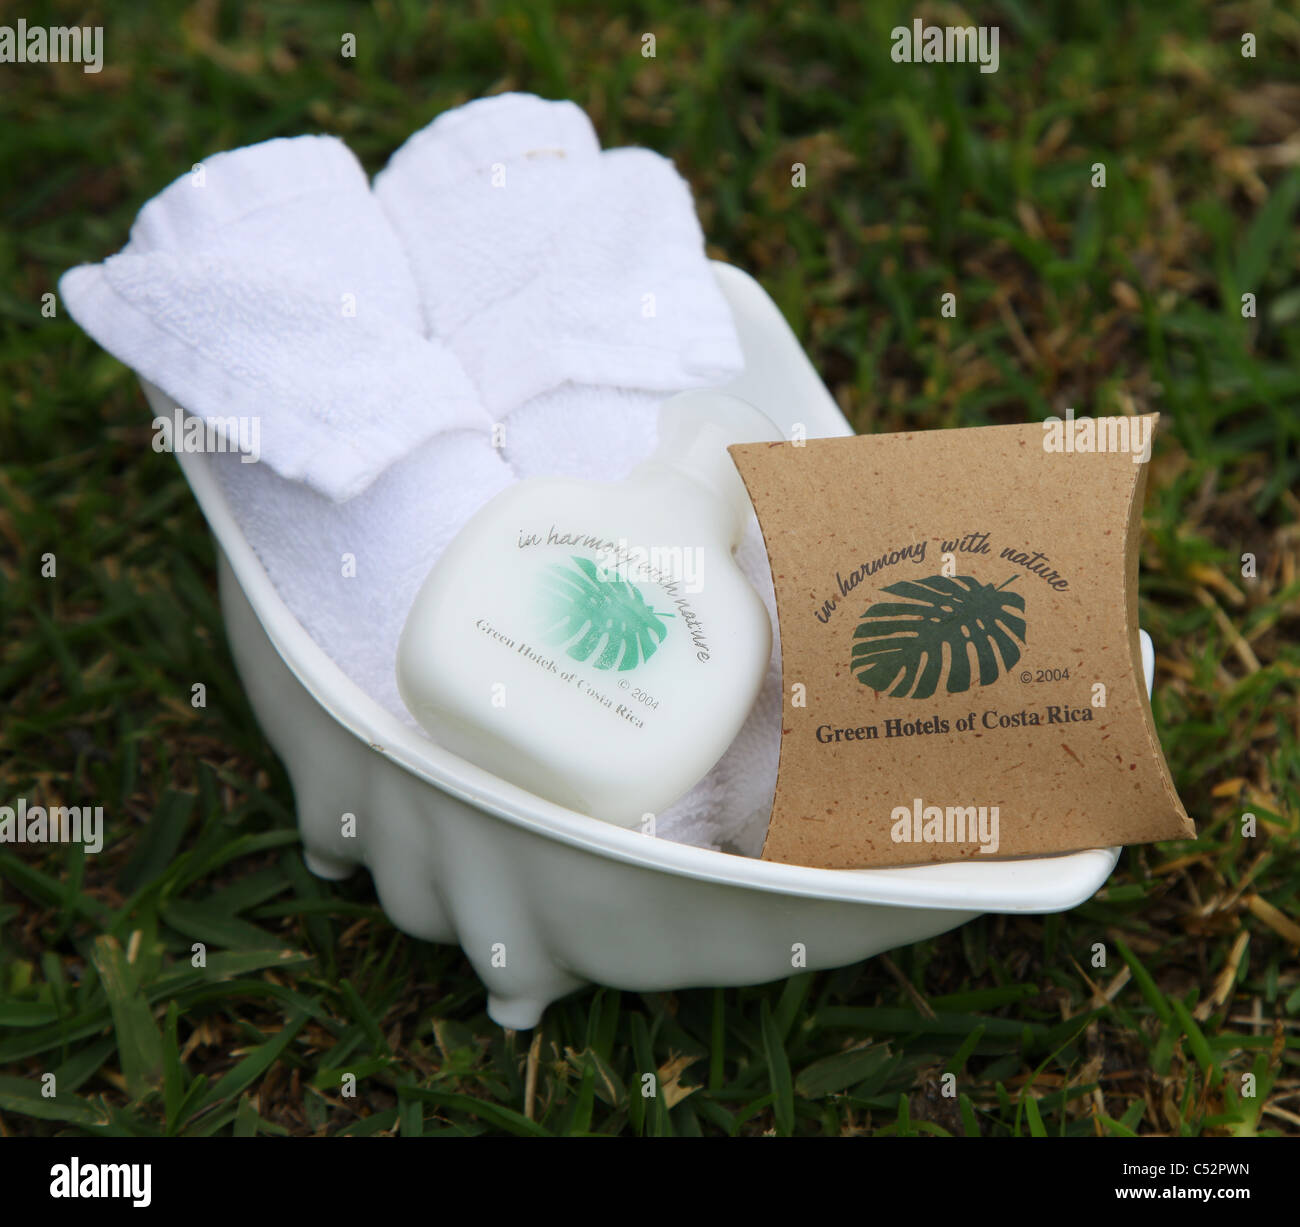 Environmentally good soap and shampoo from green hotels of Costa Rica - Stock Image